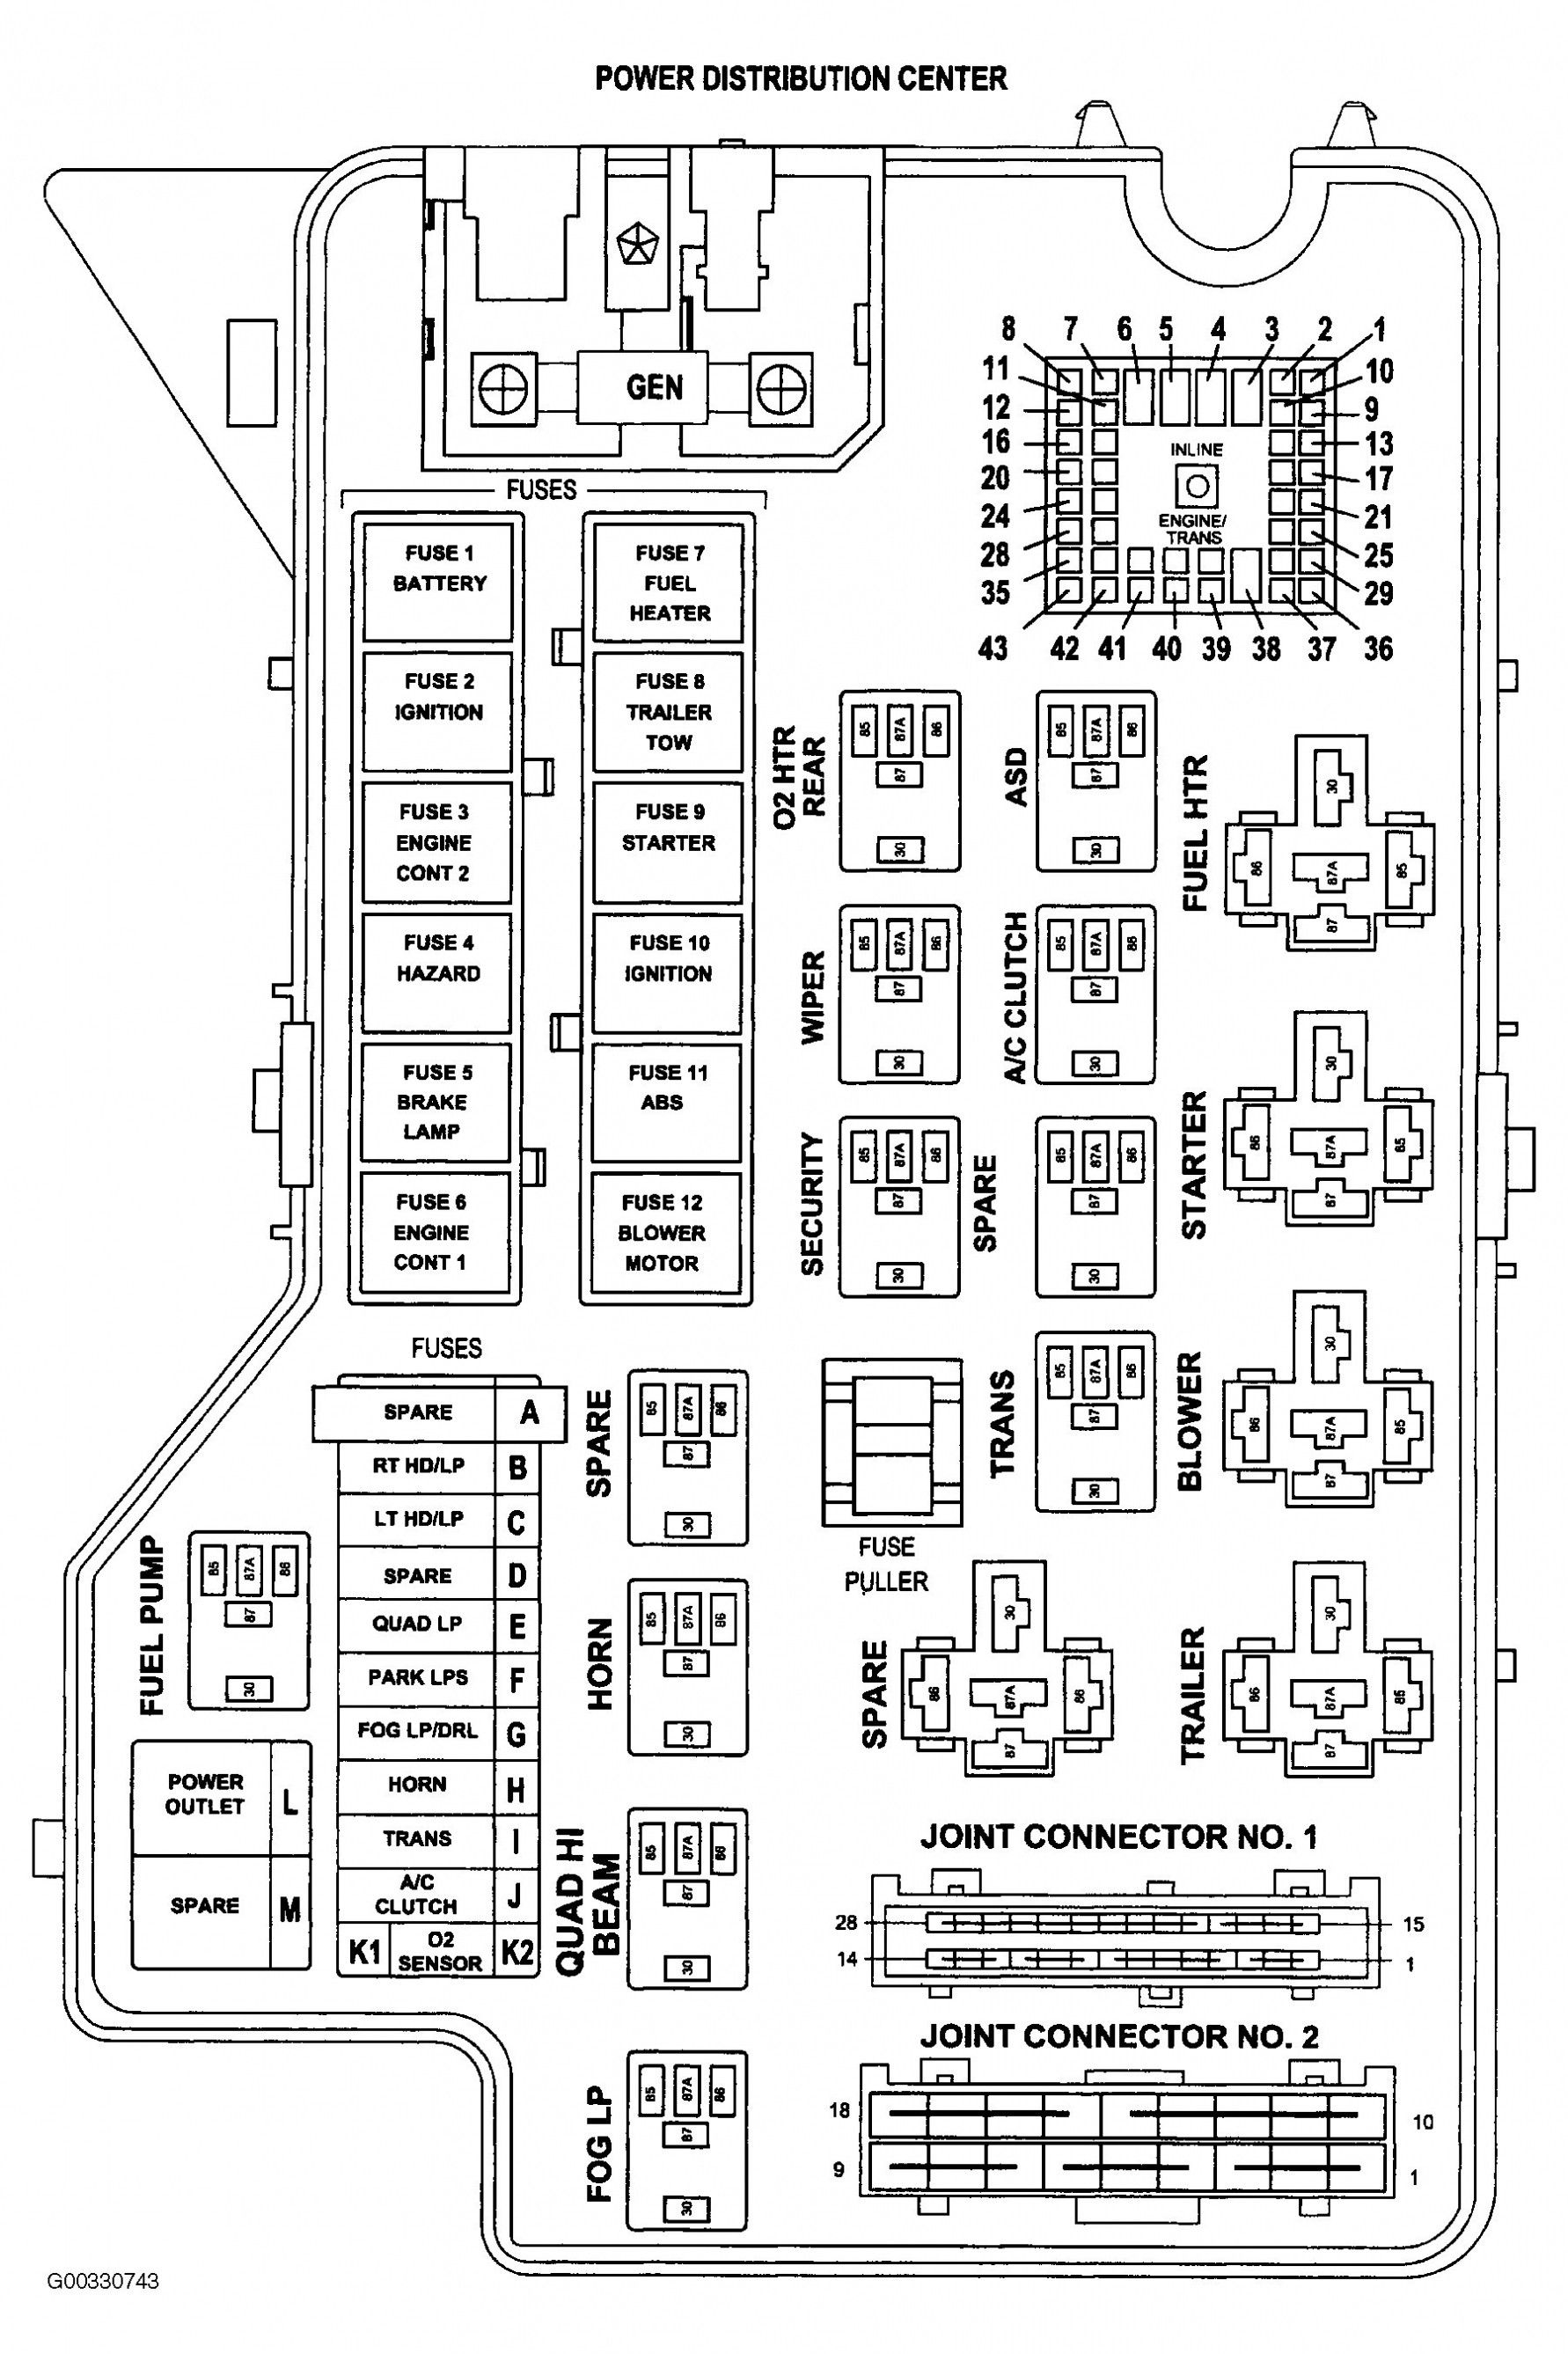 1992 Ford Explorer Engine Diagram In Addition 1994 Bmw 325i Fuel Pump